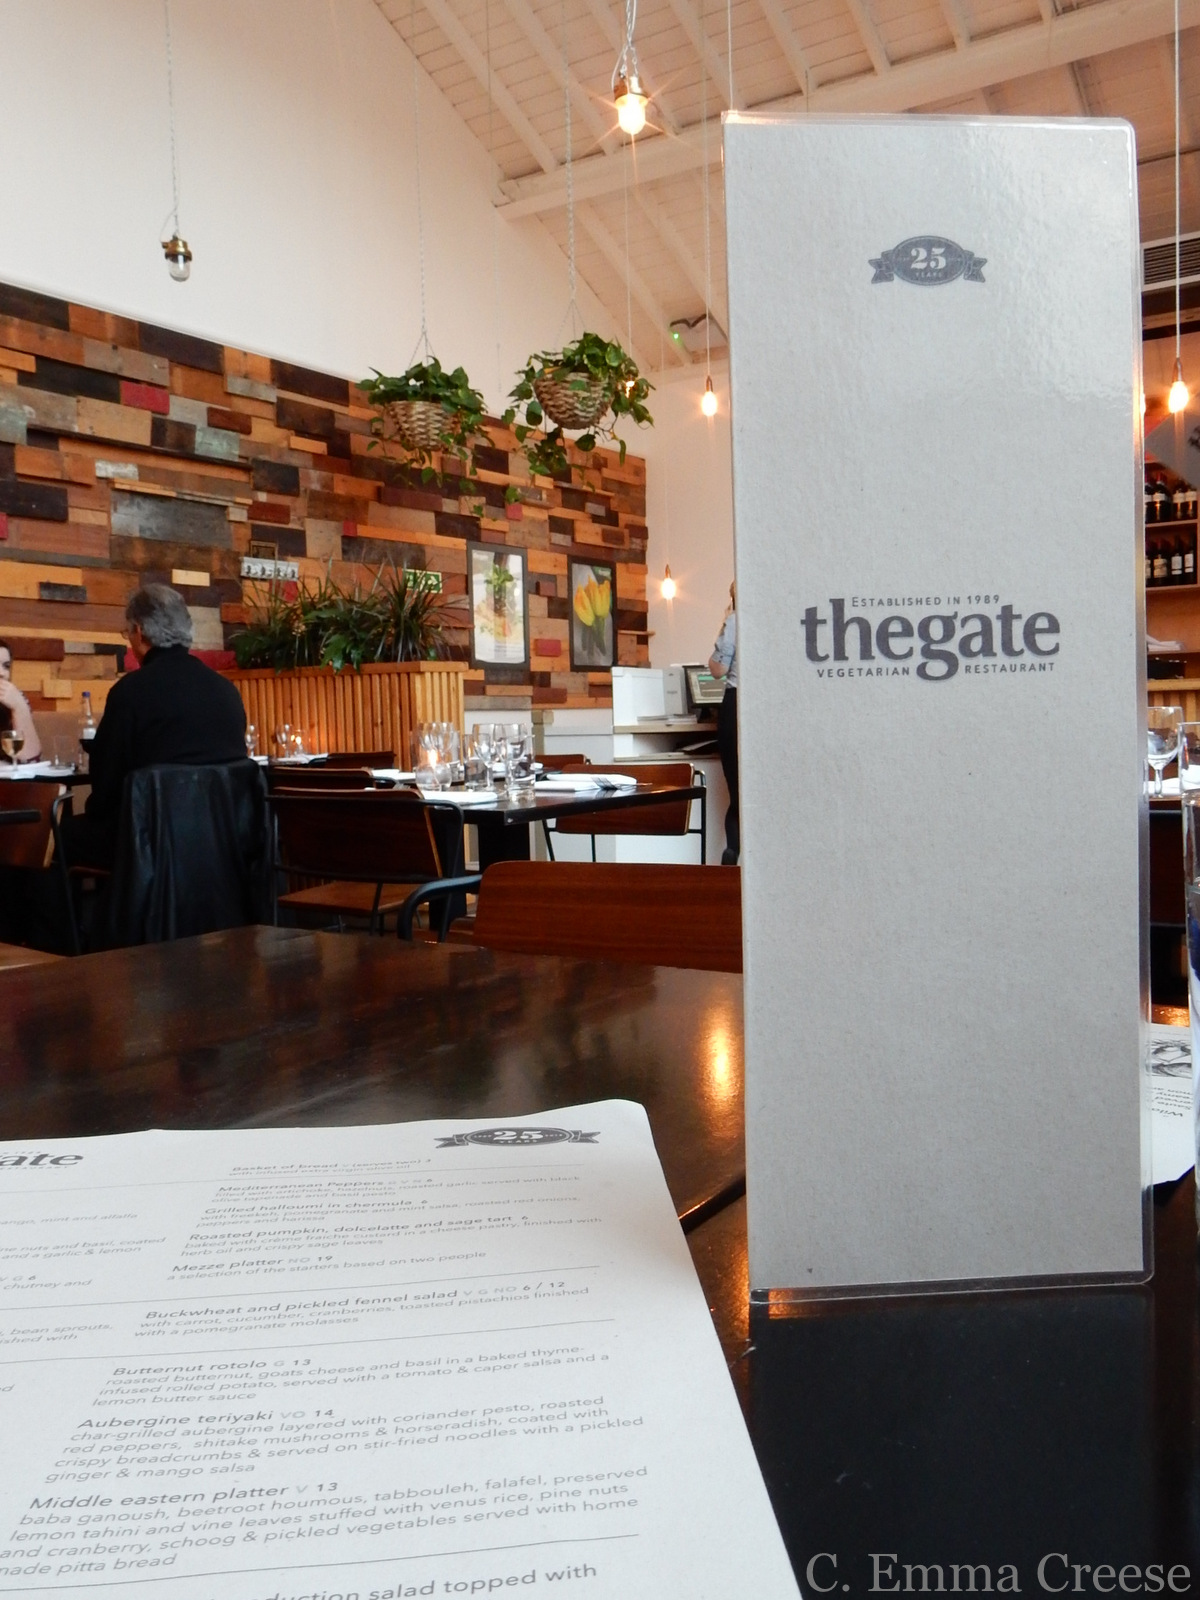 Vegetarian cuisine - the gate restaurant review - in London Adventures of a London Kiwi